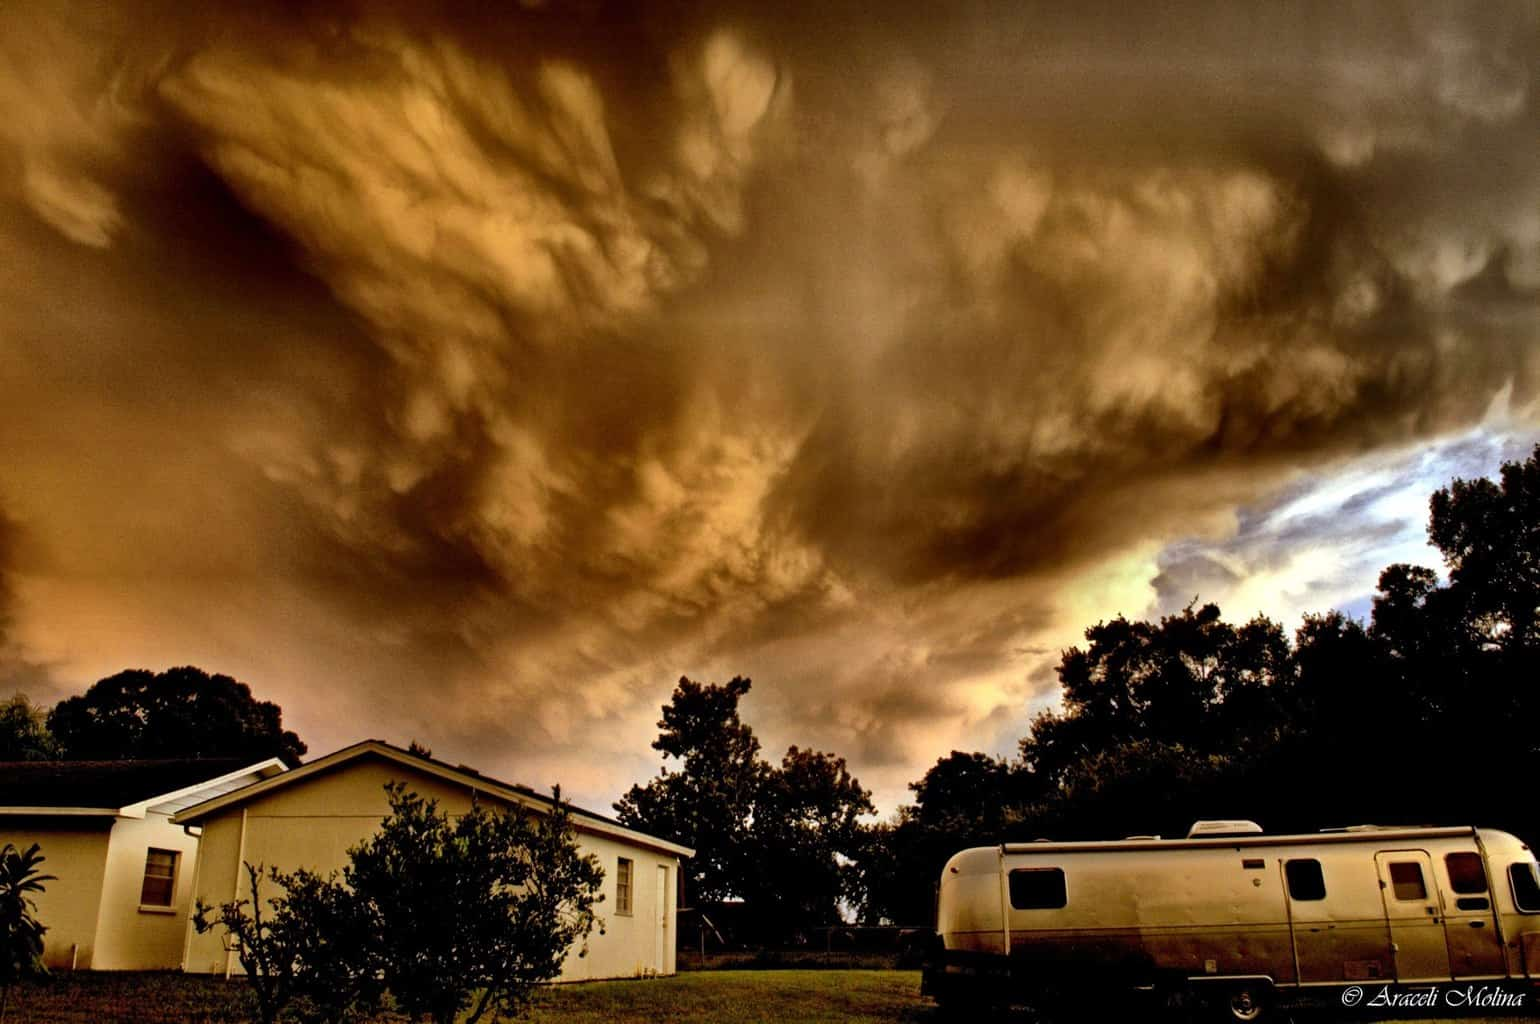 """""""Roaring Thunderstorm"""" """"Why can't we just get in the running Airstream and head to the Cemetery?"""" """"Are you crazy?"""" """"Lets hide behind the chainsaws!"""" Nikon D3200 August 2015 — in Bradenton, Florida."""